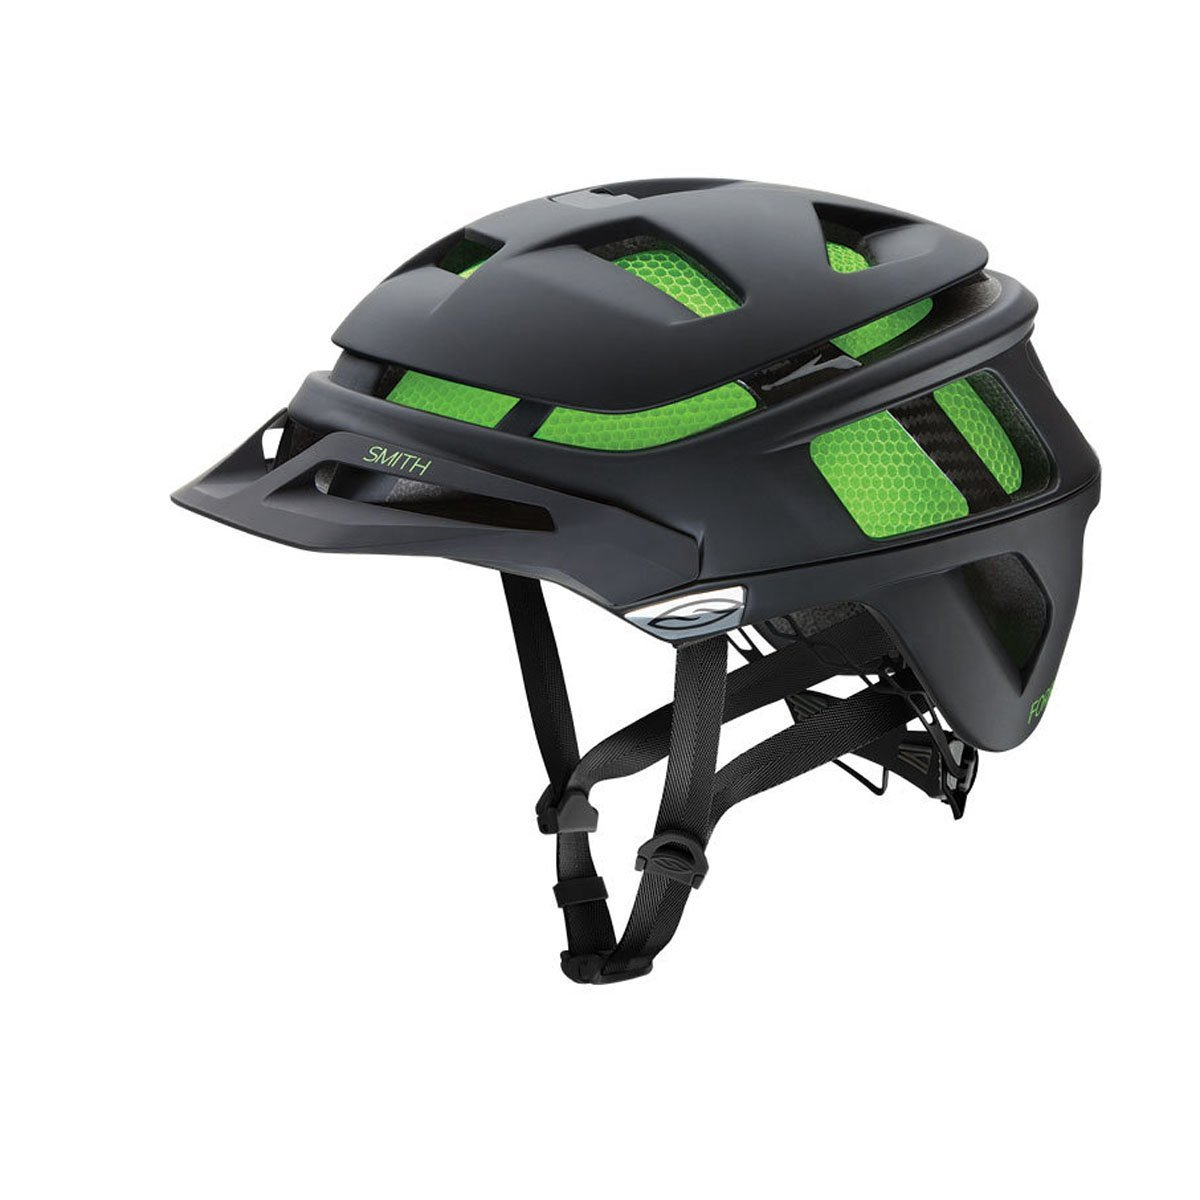 Smith Optics Bicycle Helmets